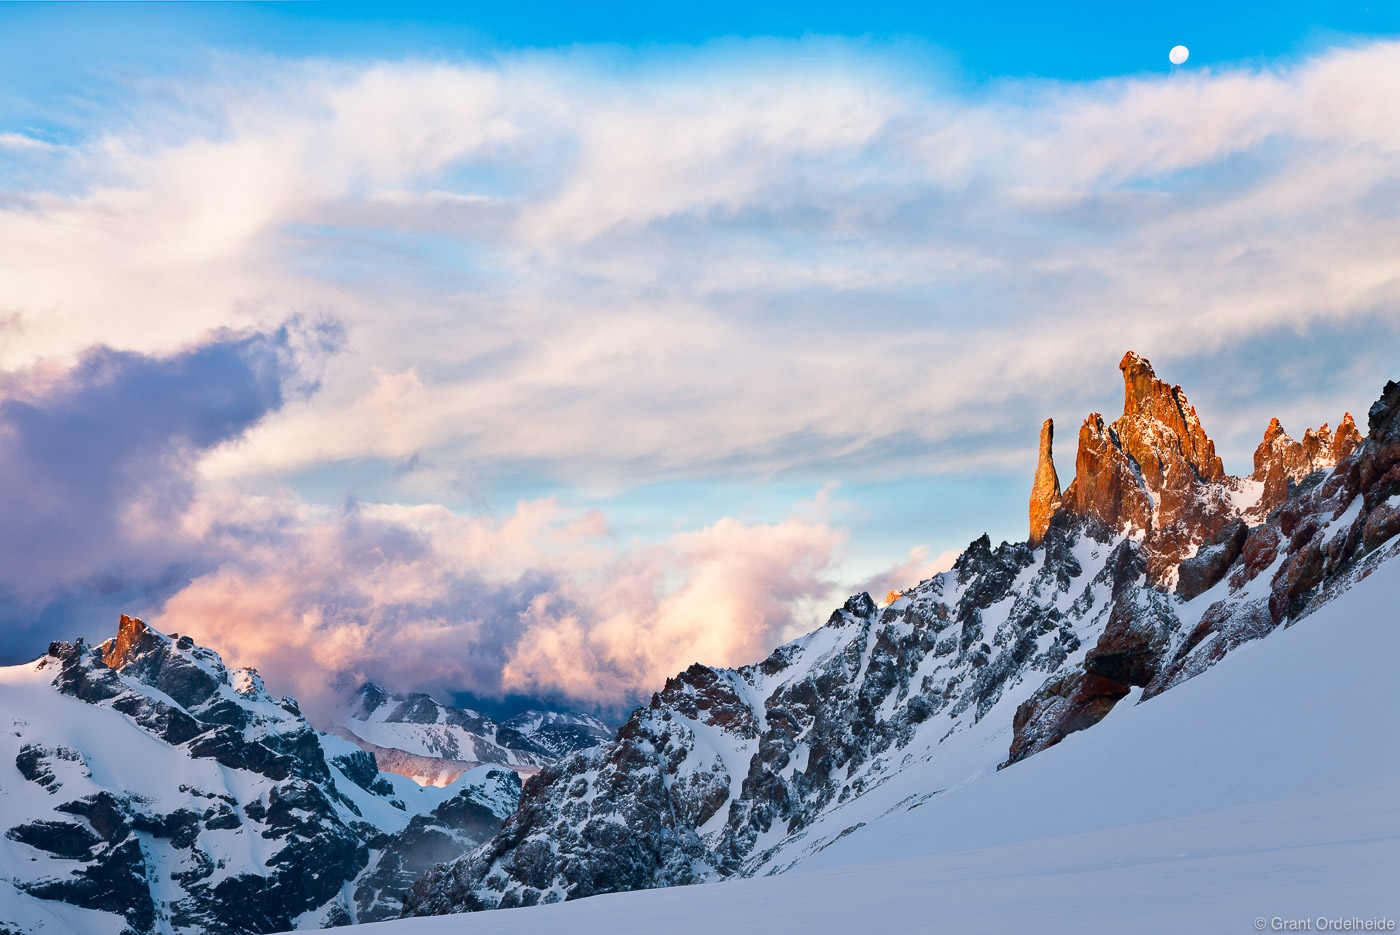 Sunset on some spires along the Peñon Glacier in Cerro Castillo National Reserve.